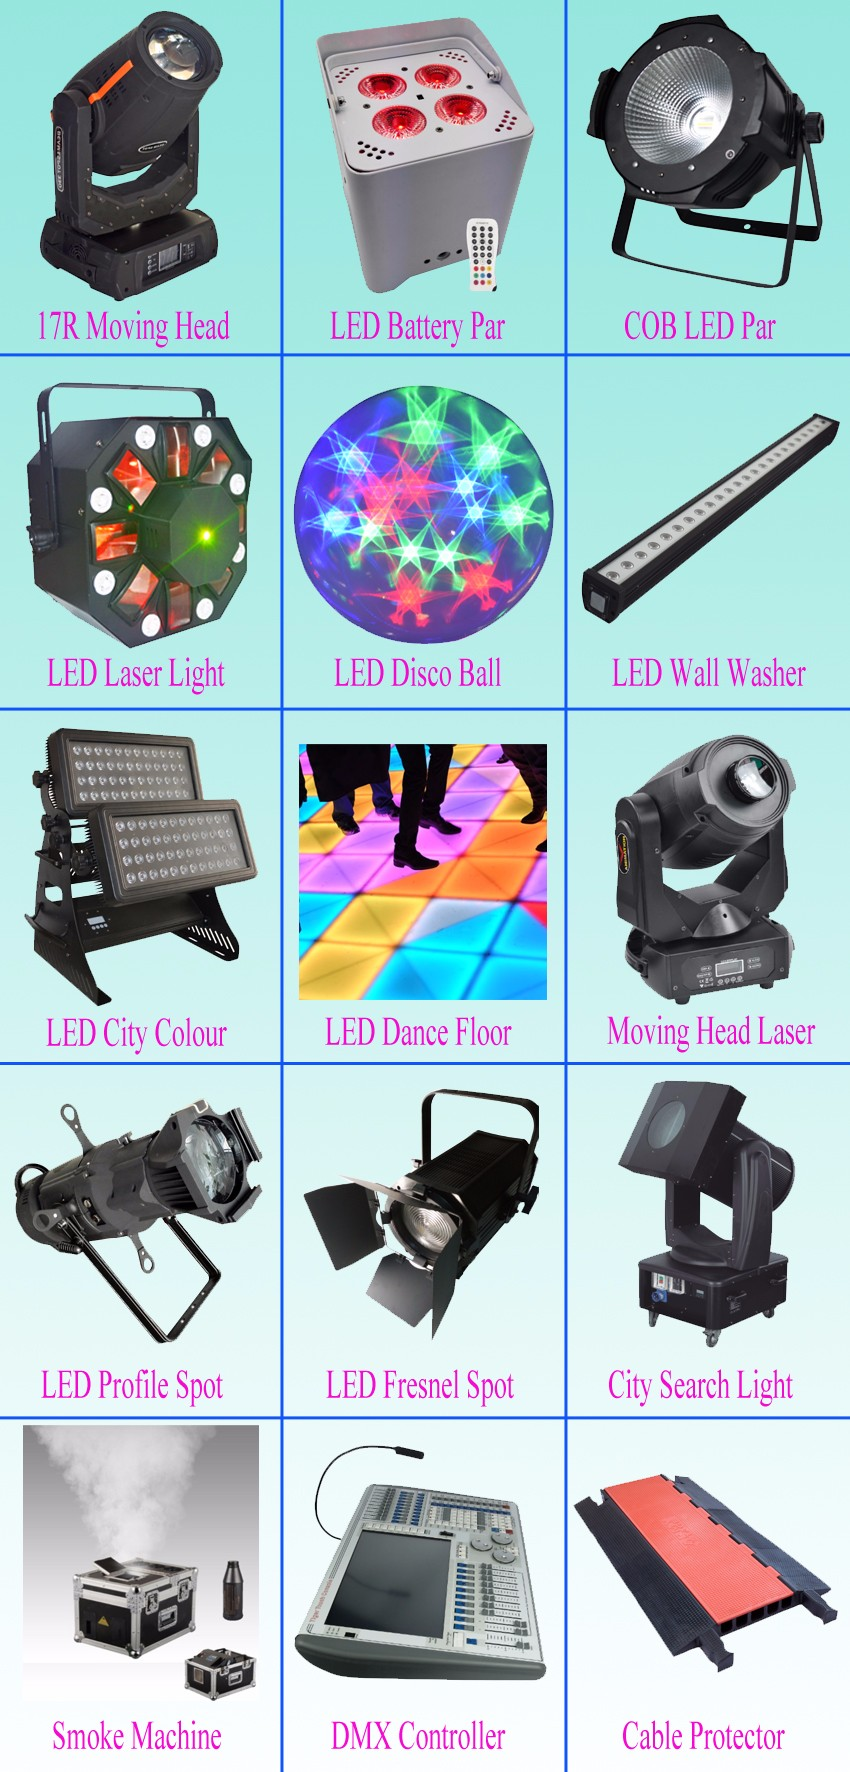 1 stage light moving head stage machine led par cable protector